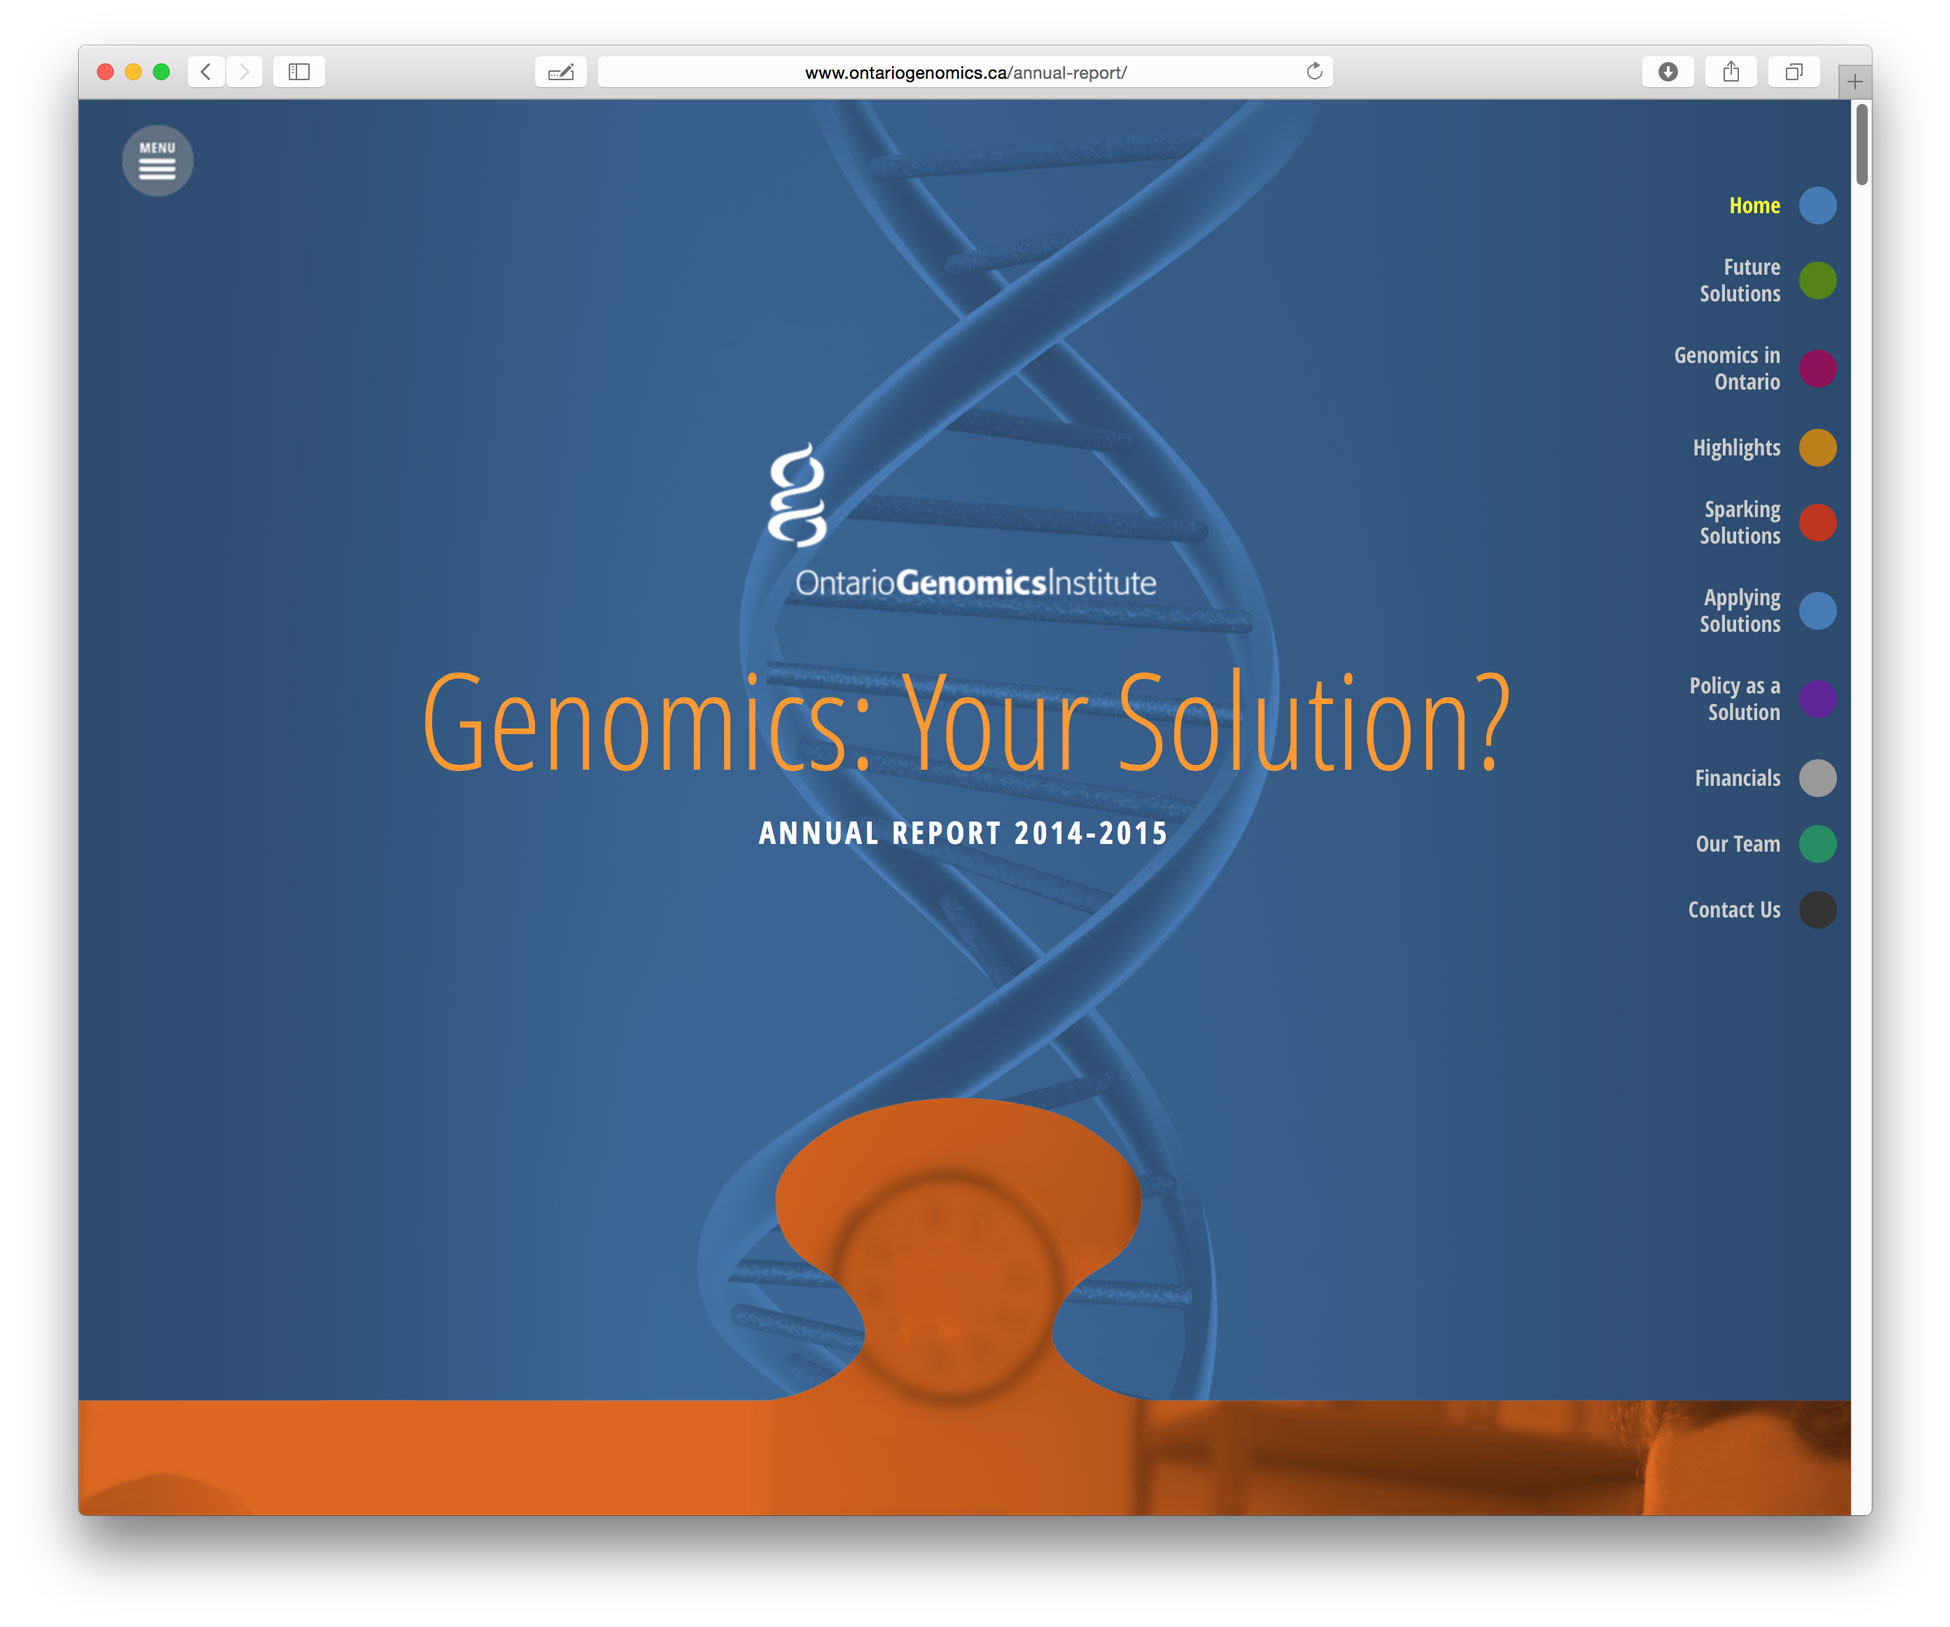 Ontario Geonomics website design by Swerve Design